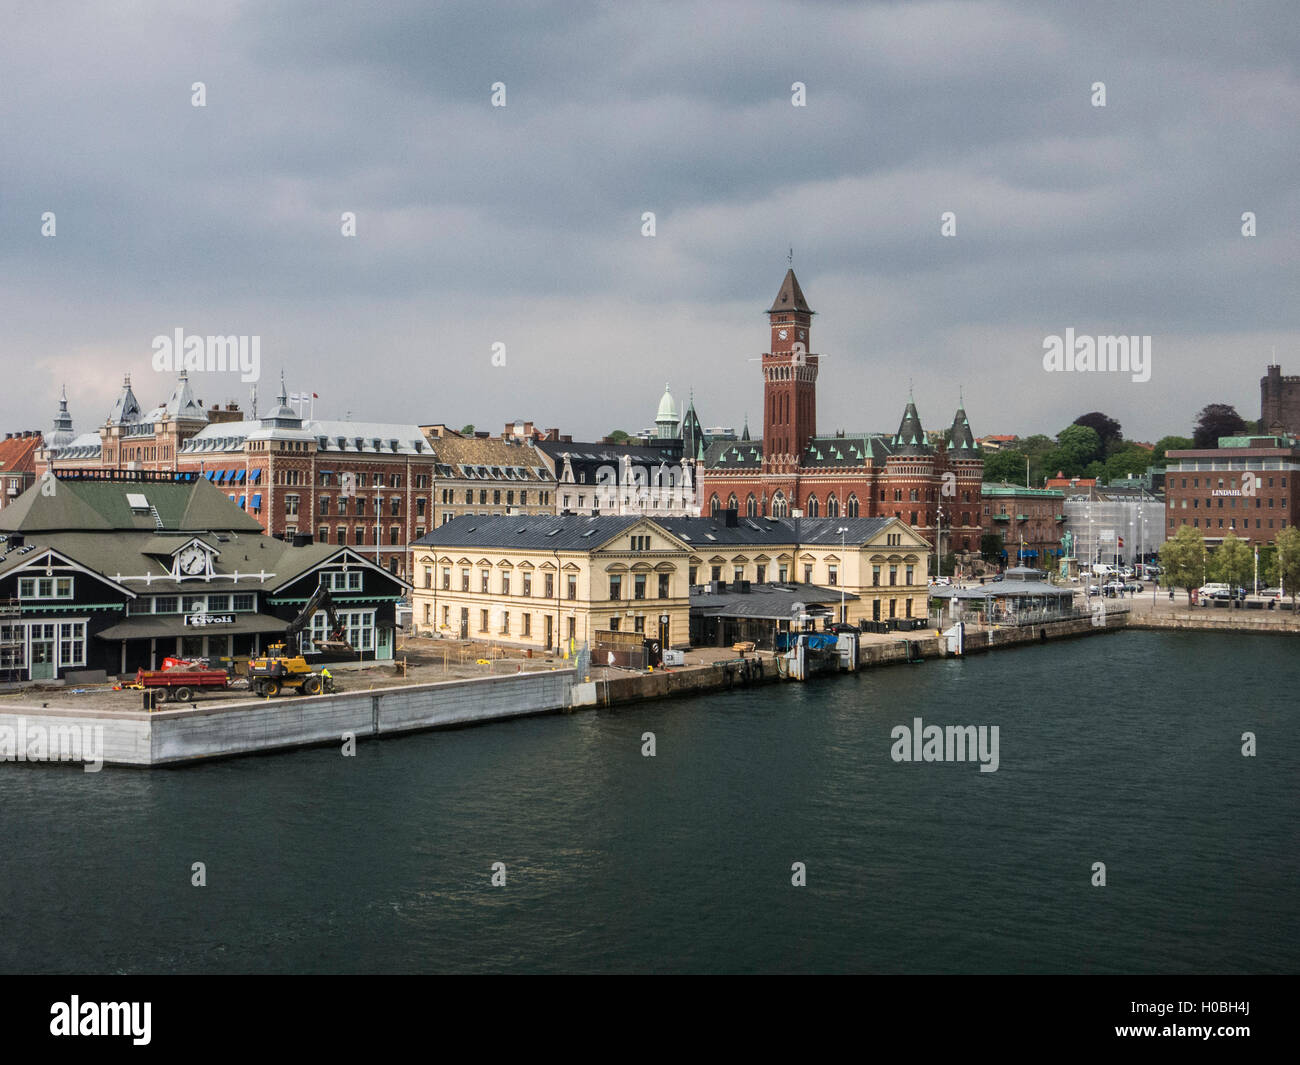 The port and down-town of Helsingborg in south Sweden as seen from the ferry from Elsinore in Denmark - Stock Image